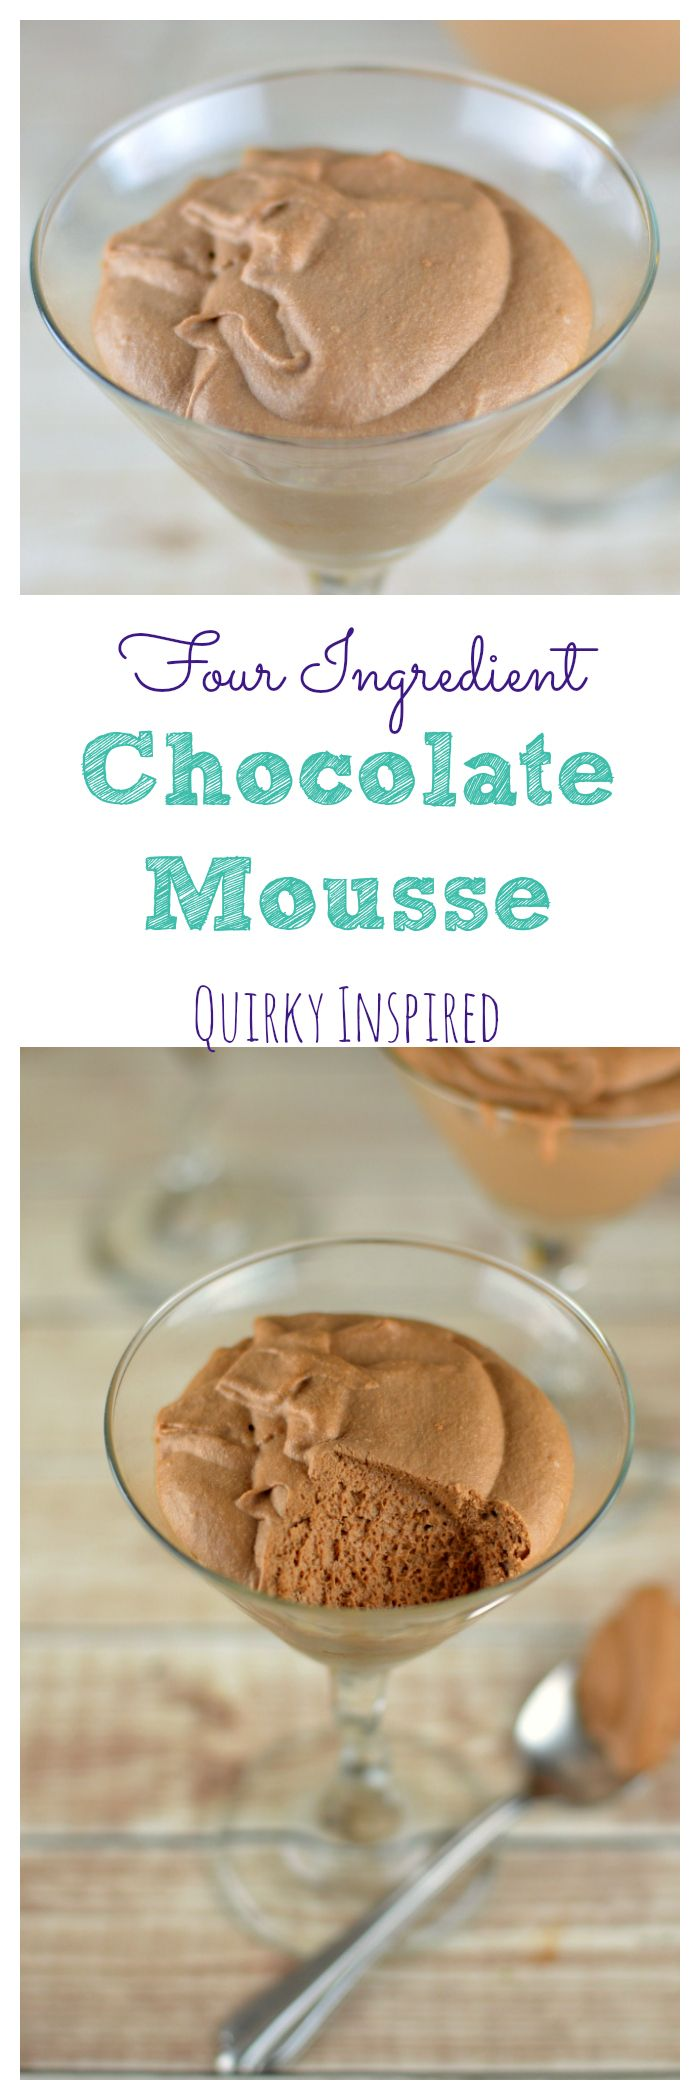 Chocolate mousse is an easy dessert recipe that will make your guests and family…